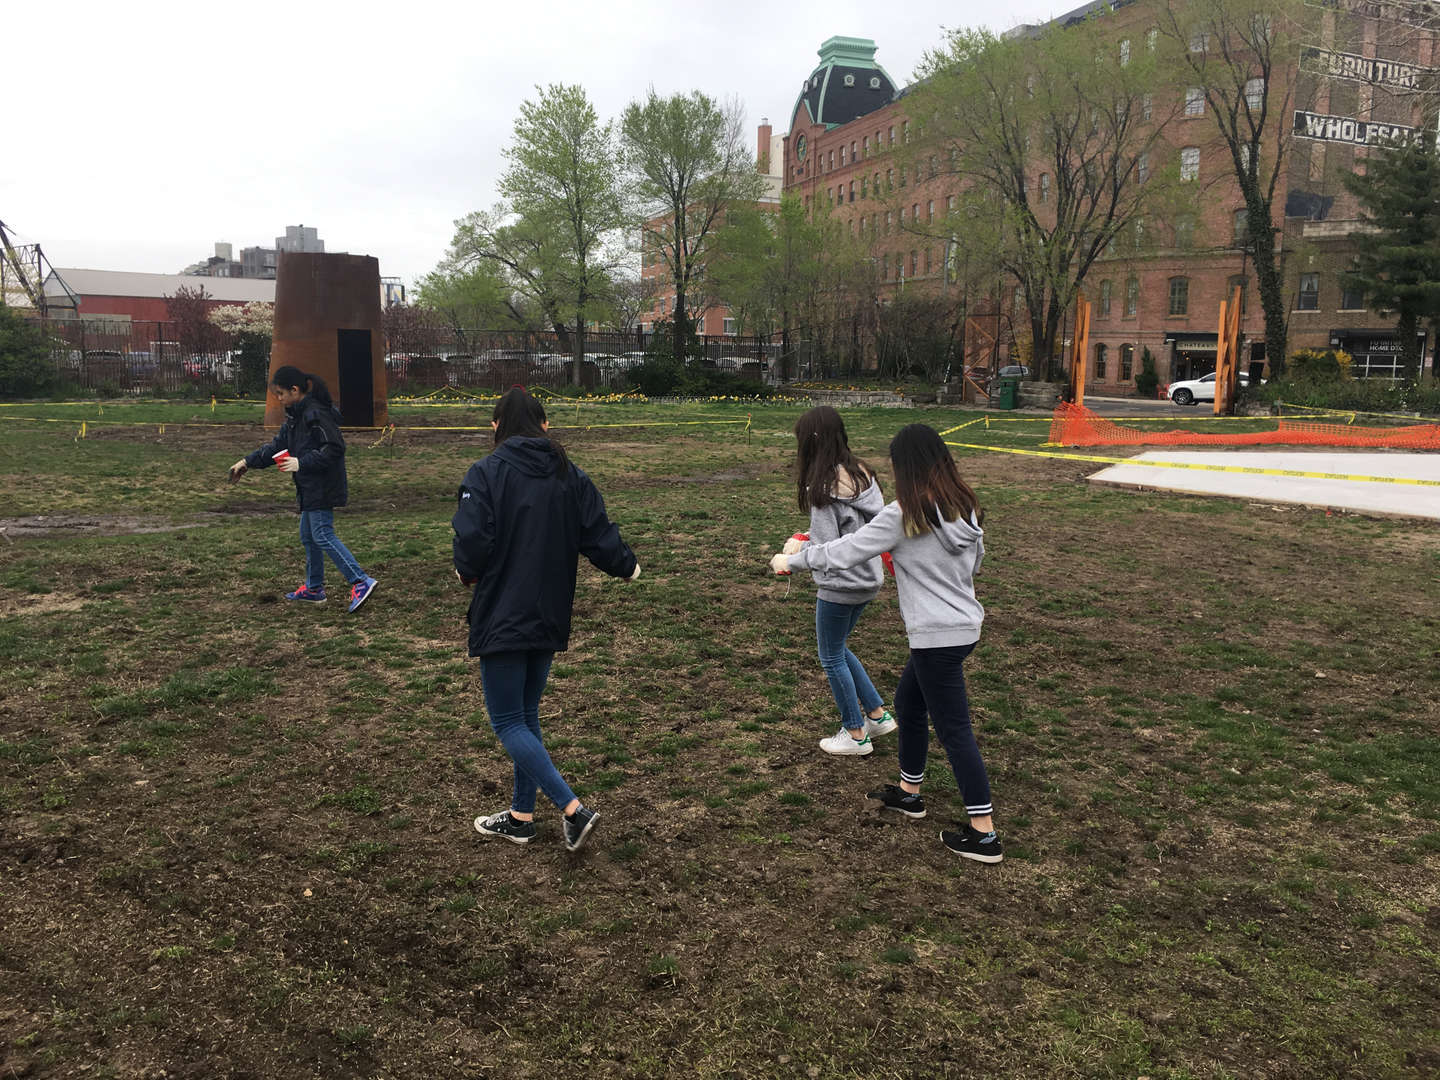 A group of four students seed the lawn